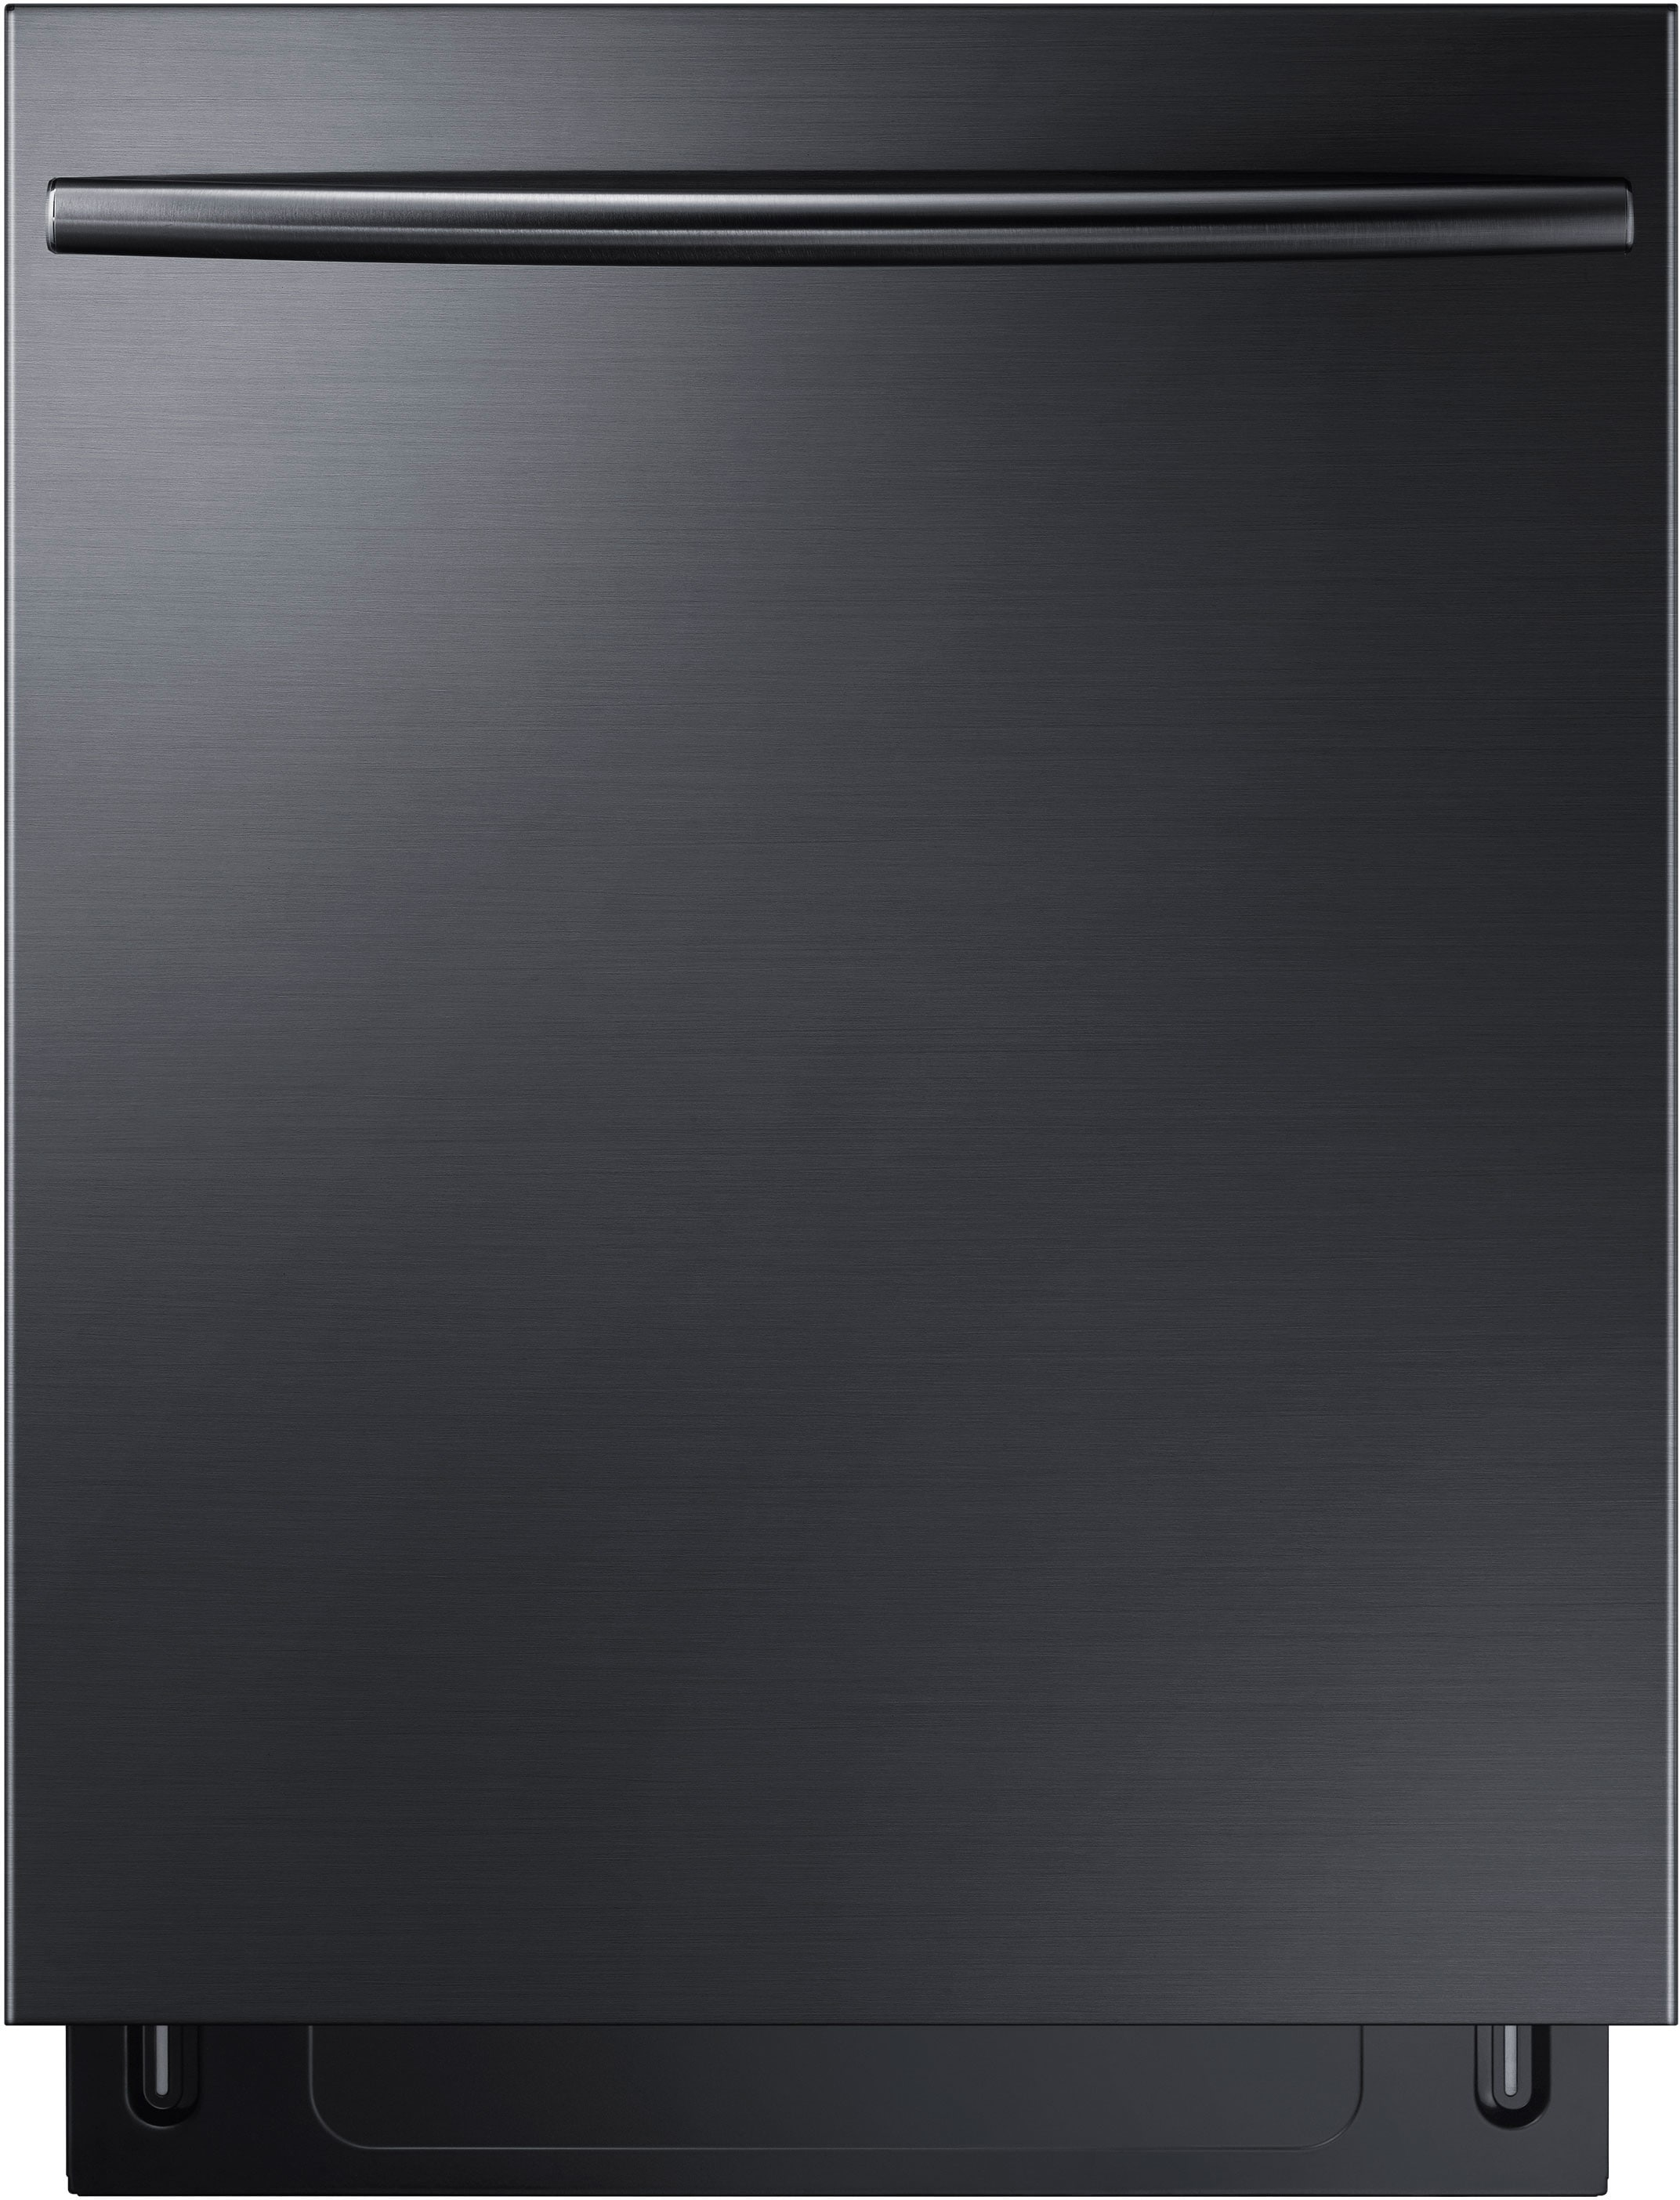 Samsung Dw80k7050ug Fully Integrated Dishwasher With 3rd